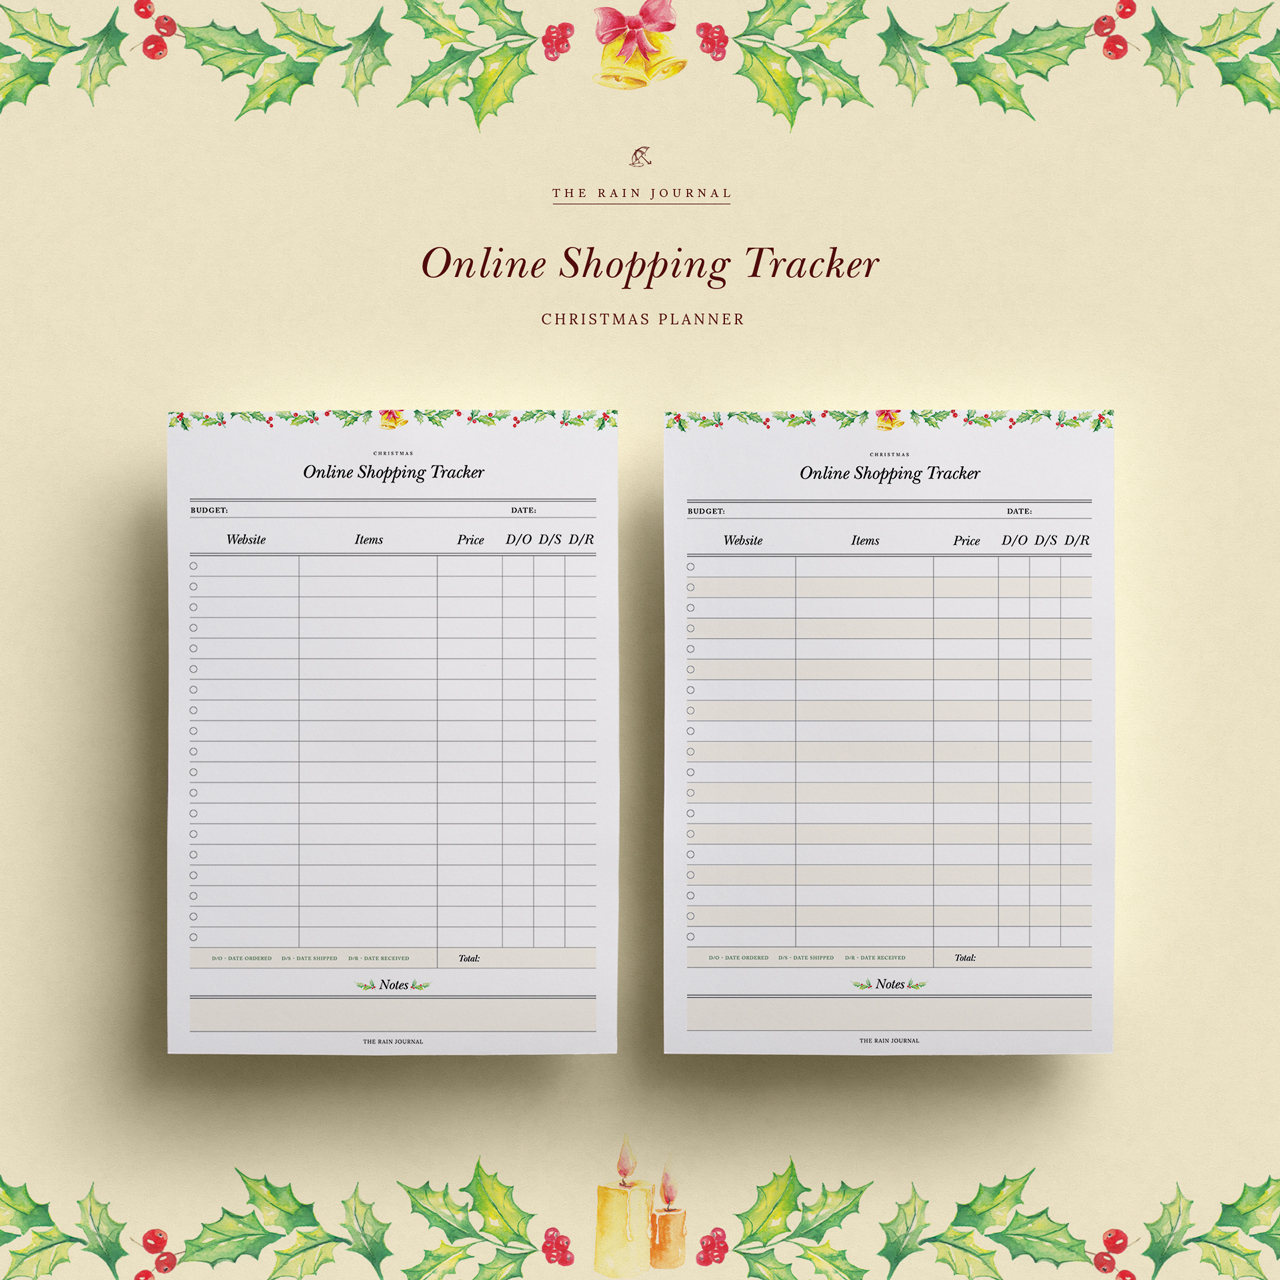 online shopping tracker shopping list christmas planner